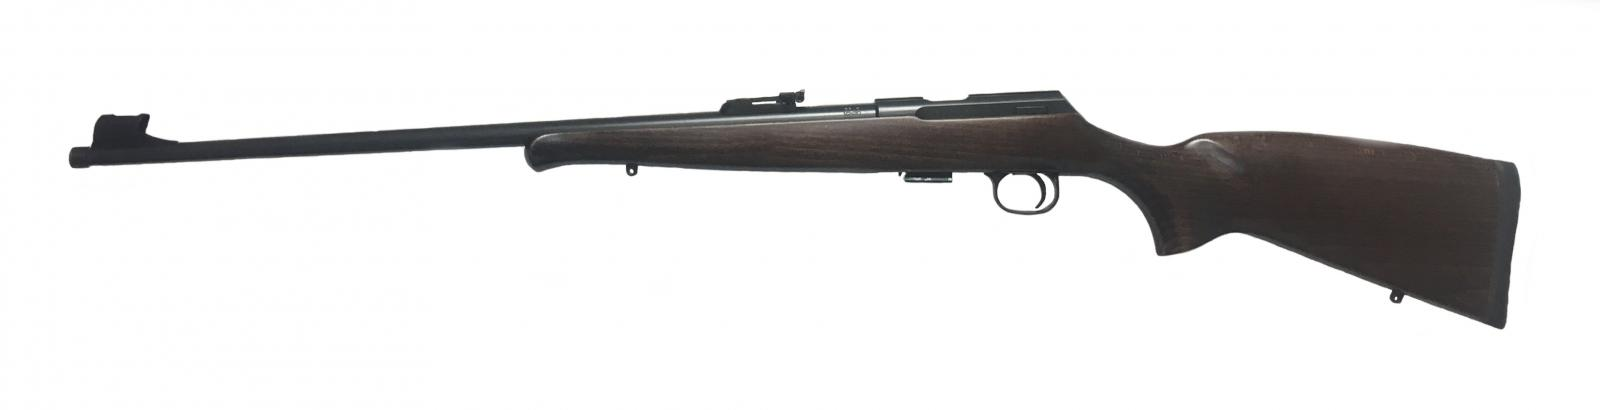 Carabine CZ 457 TRAINING RIFLE  Cal. 22 LR